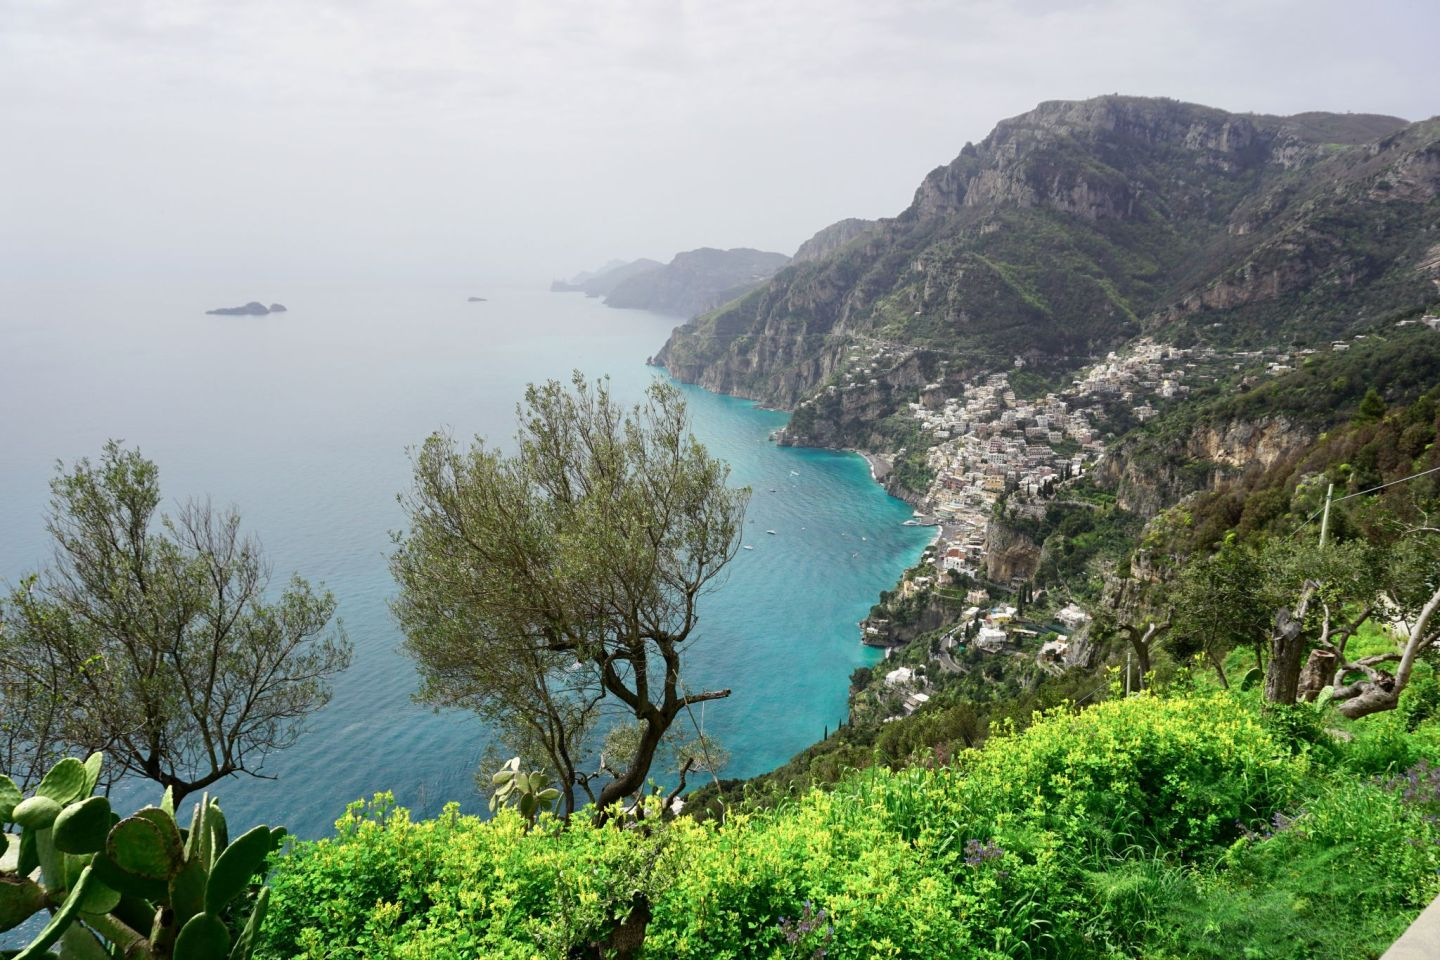 Hiking the Path of Gods on the Amalfi coast